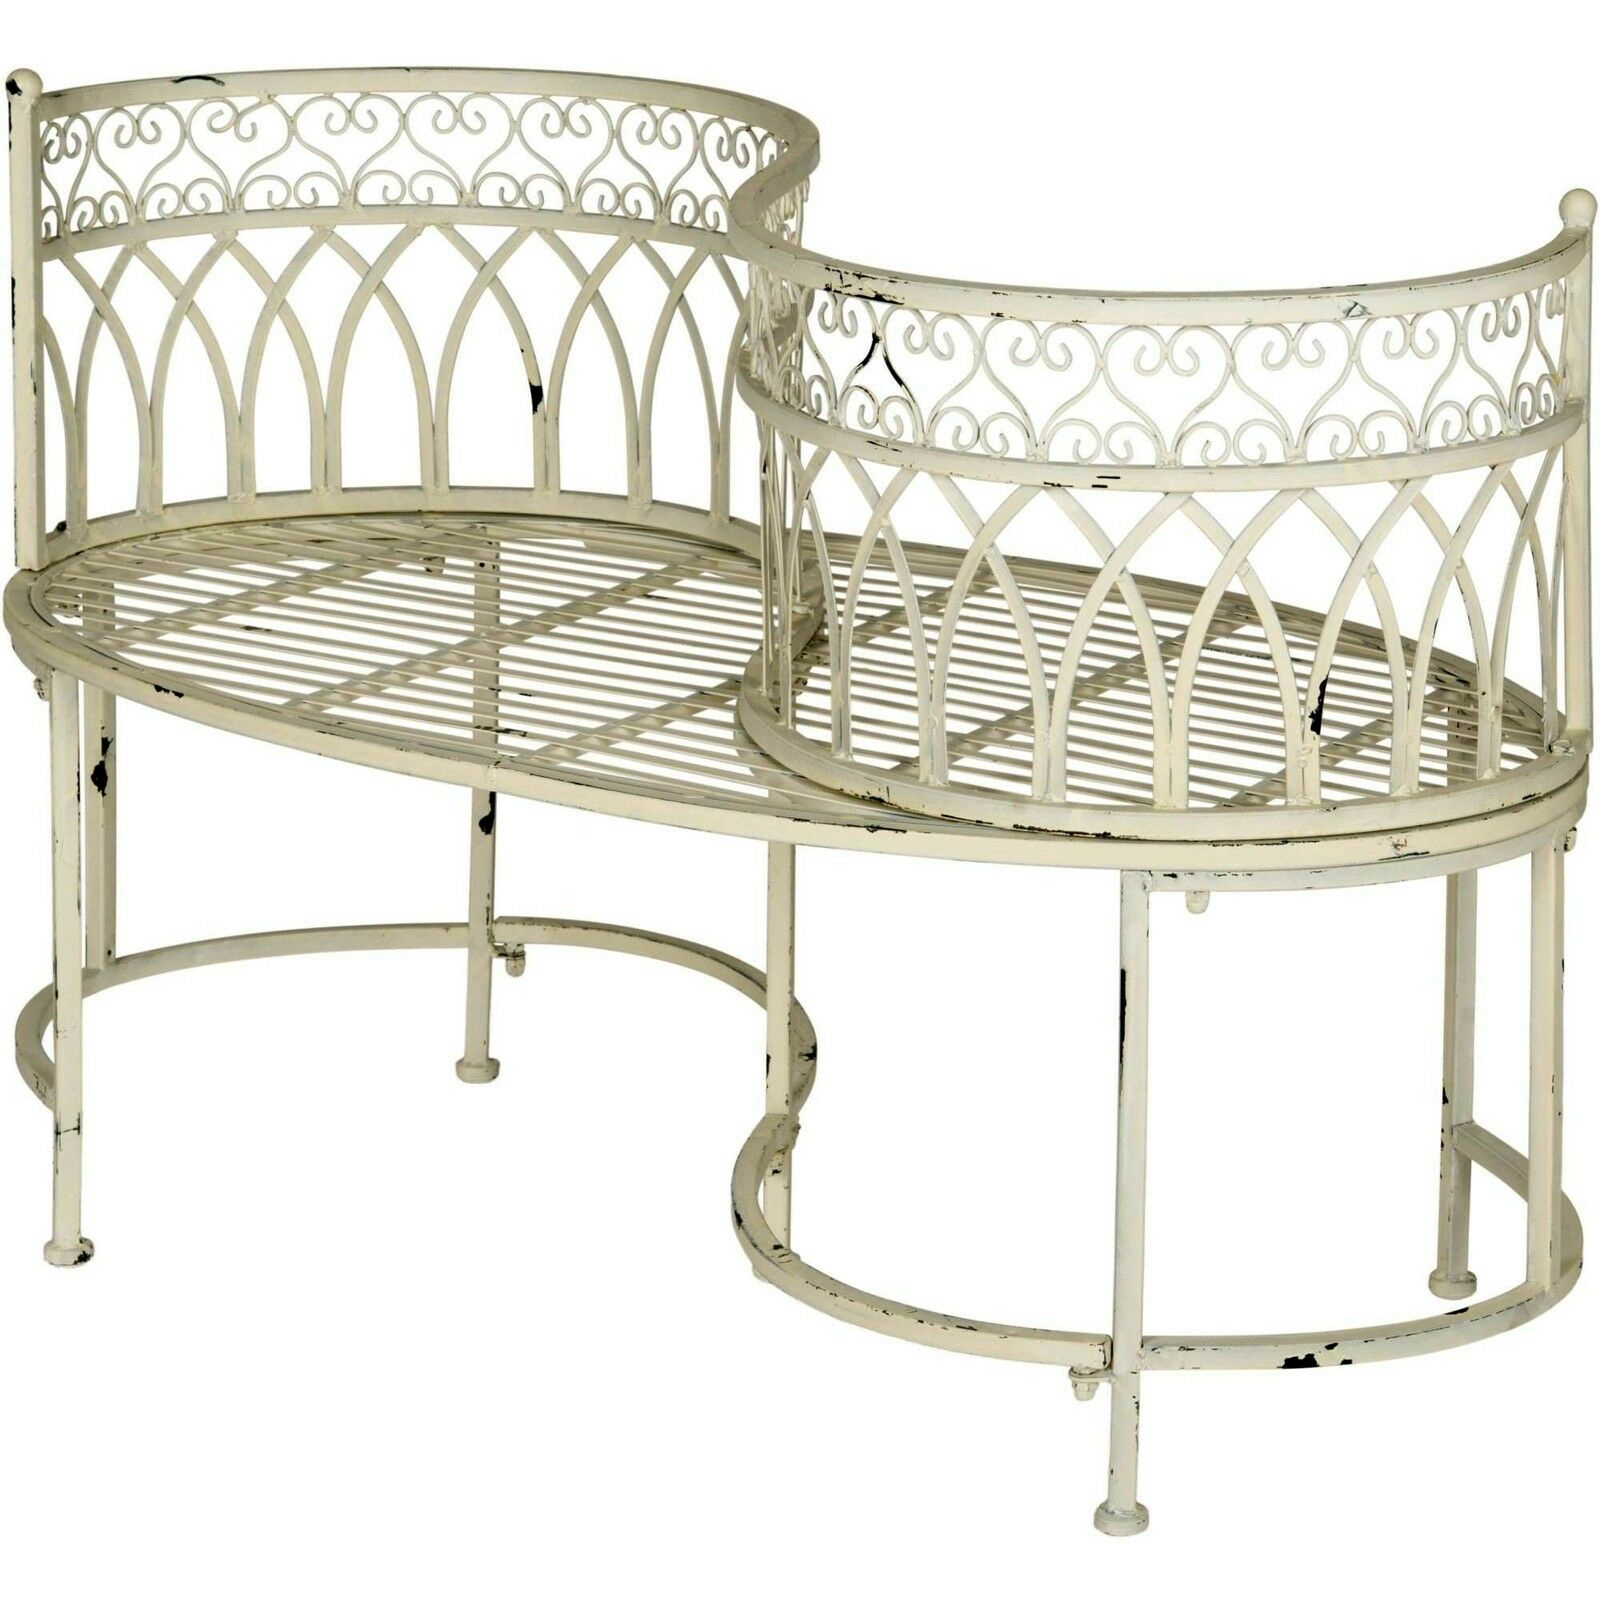 Details About Kissing Bench Curved Metal Tete A Tete Garden Chair Outdoor Vintage Patio Seat With Regard To Wicker Tete A Tete Benches (View 15 of 25)